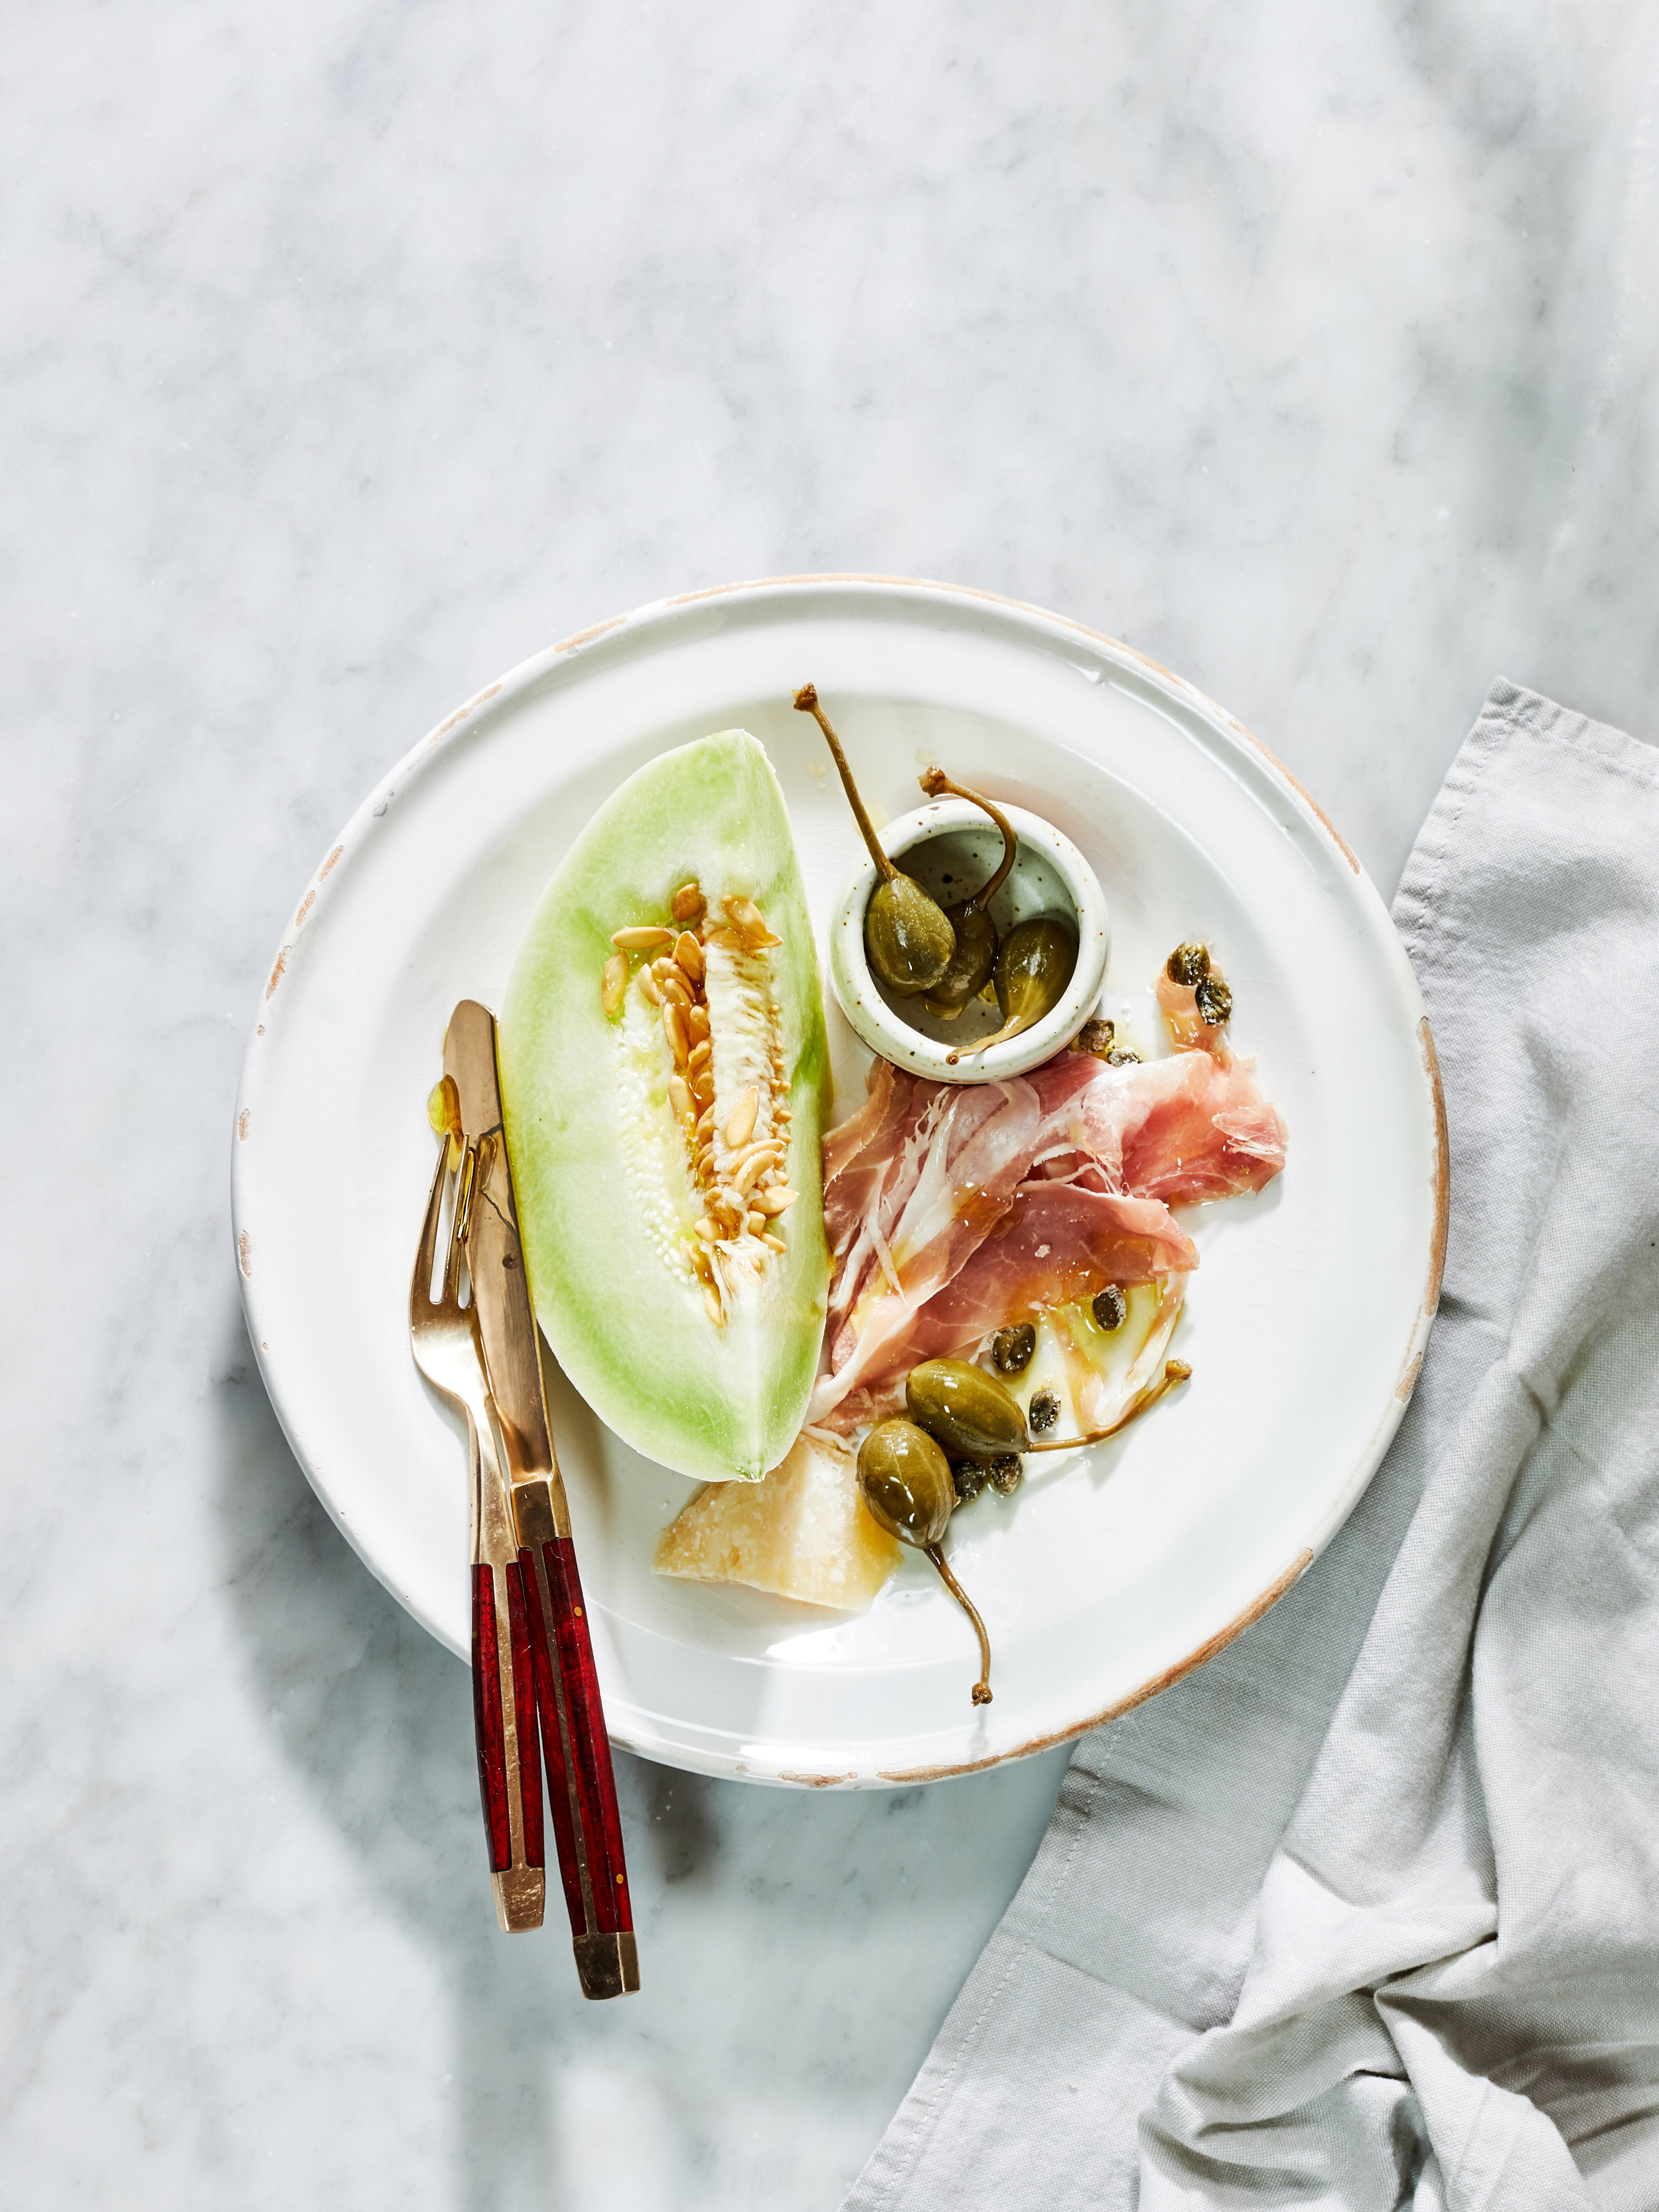 PROSCIUTTO AND MELON WITH KALE AND CAPER BERRIES (PLUS FOUR HOT RESTAURANTS IN ROME) #sarahcopeland #edibleliving #prosciuttoandmelon #foodstyling #easysalad